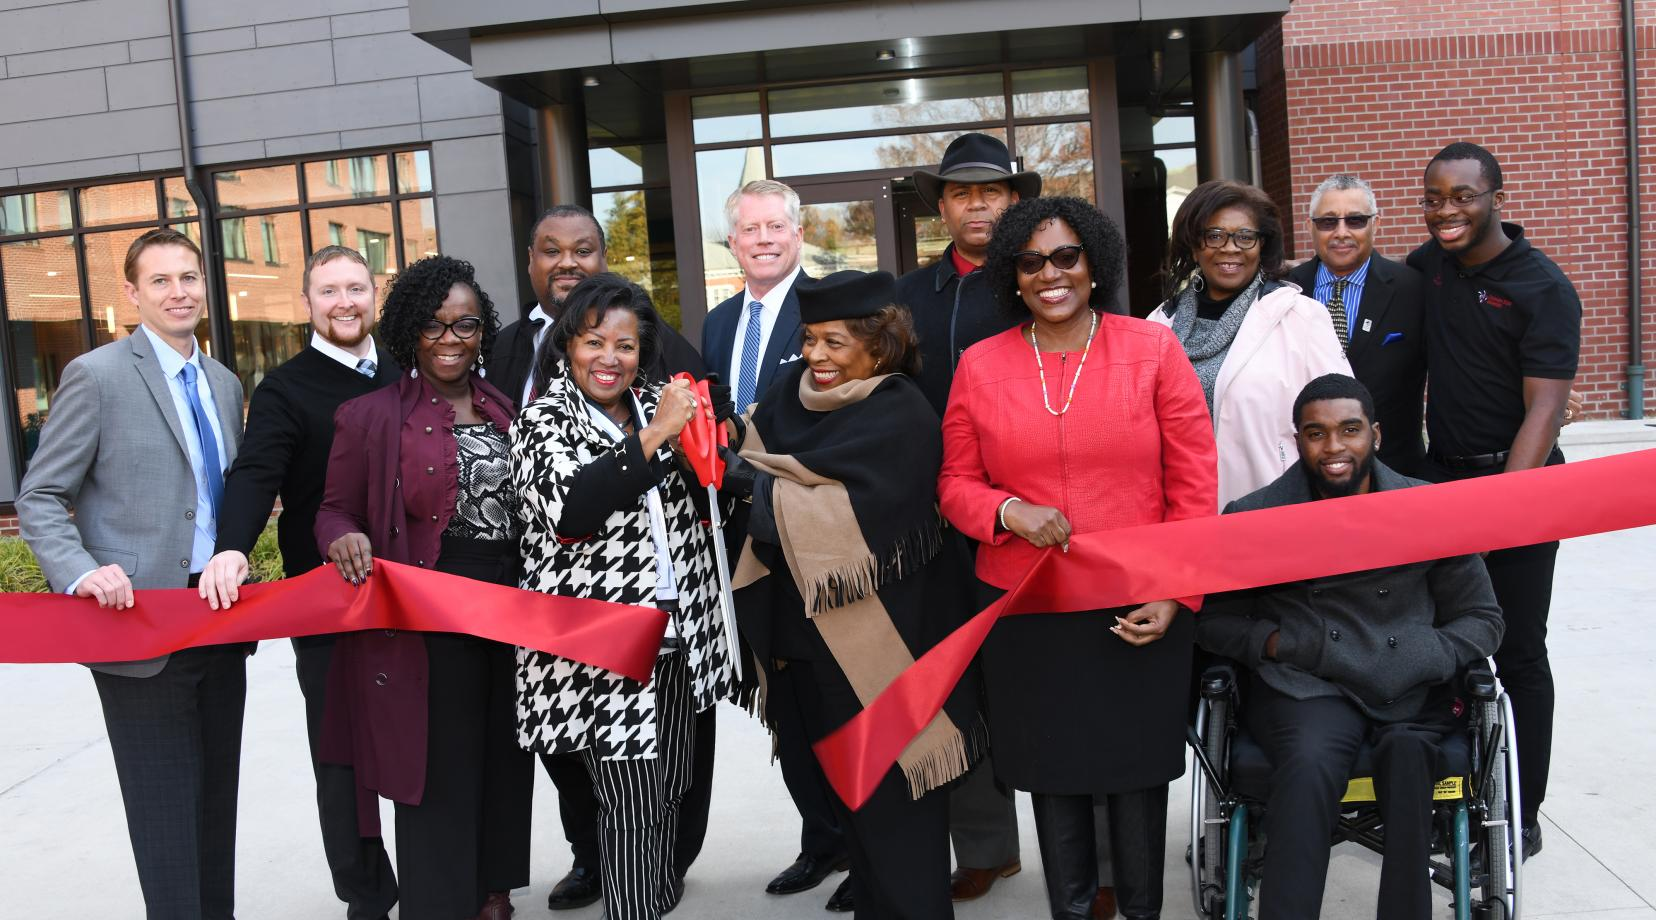 Dr. Devona Williams (with scissors) and University President Wilma Mishoe and others take part in the ribbon-cutting ceremony to formally christen the new Tubman-Laws Residential Hall.